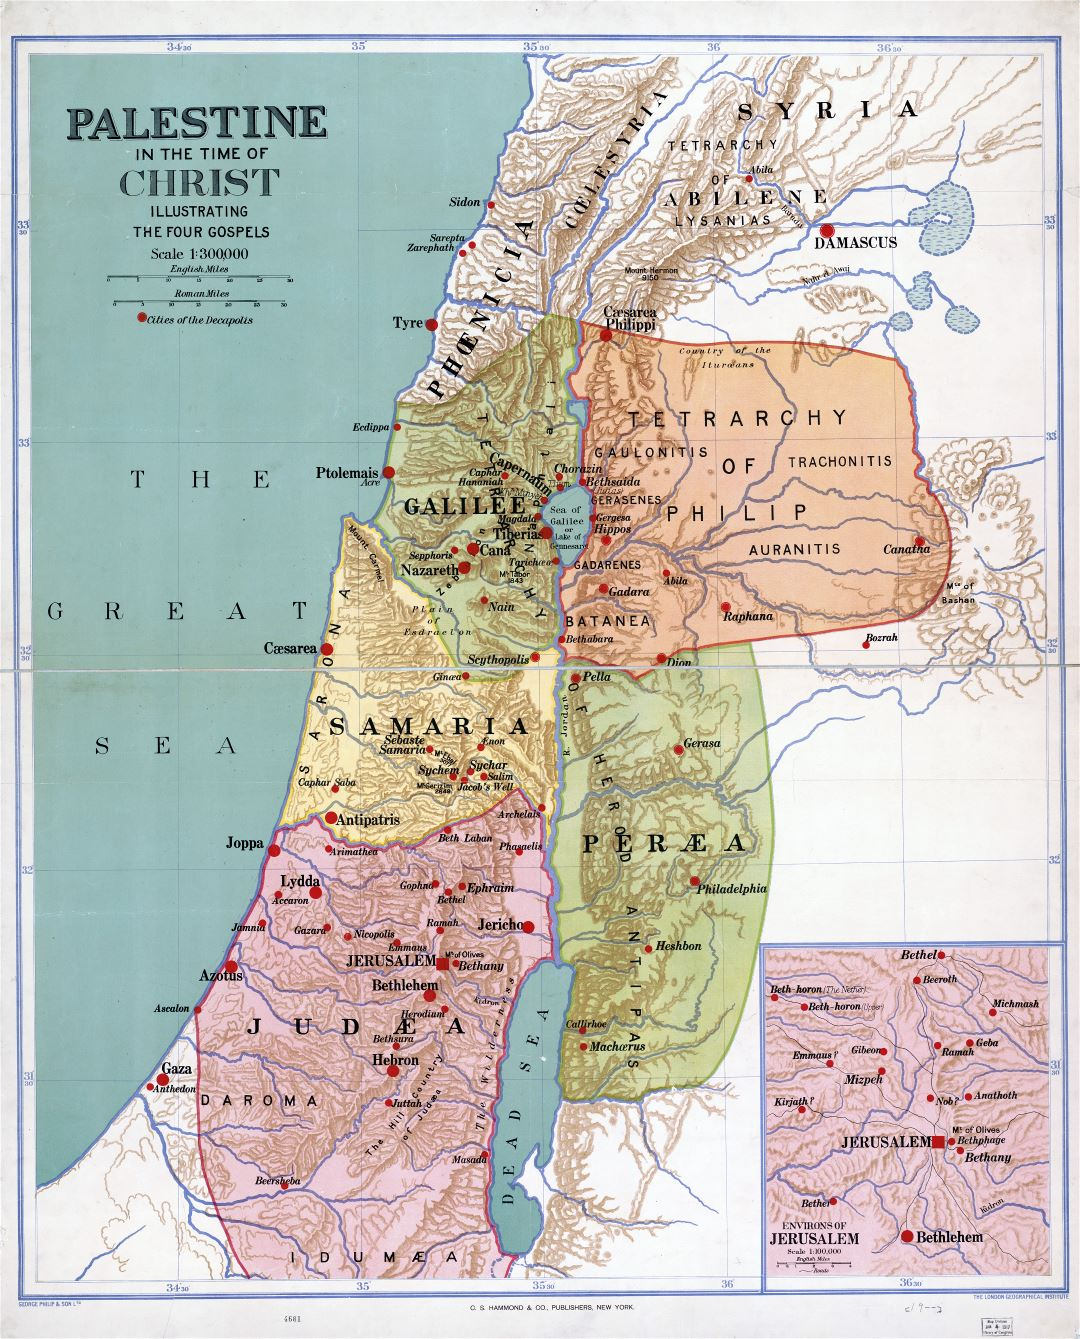 Large scale detailed old map of Palestine in the time of Christ - 1916